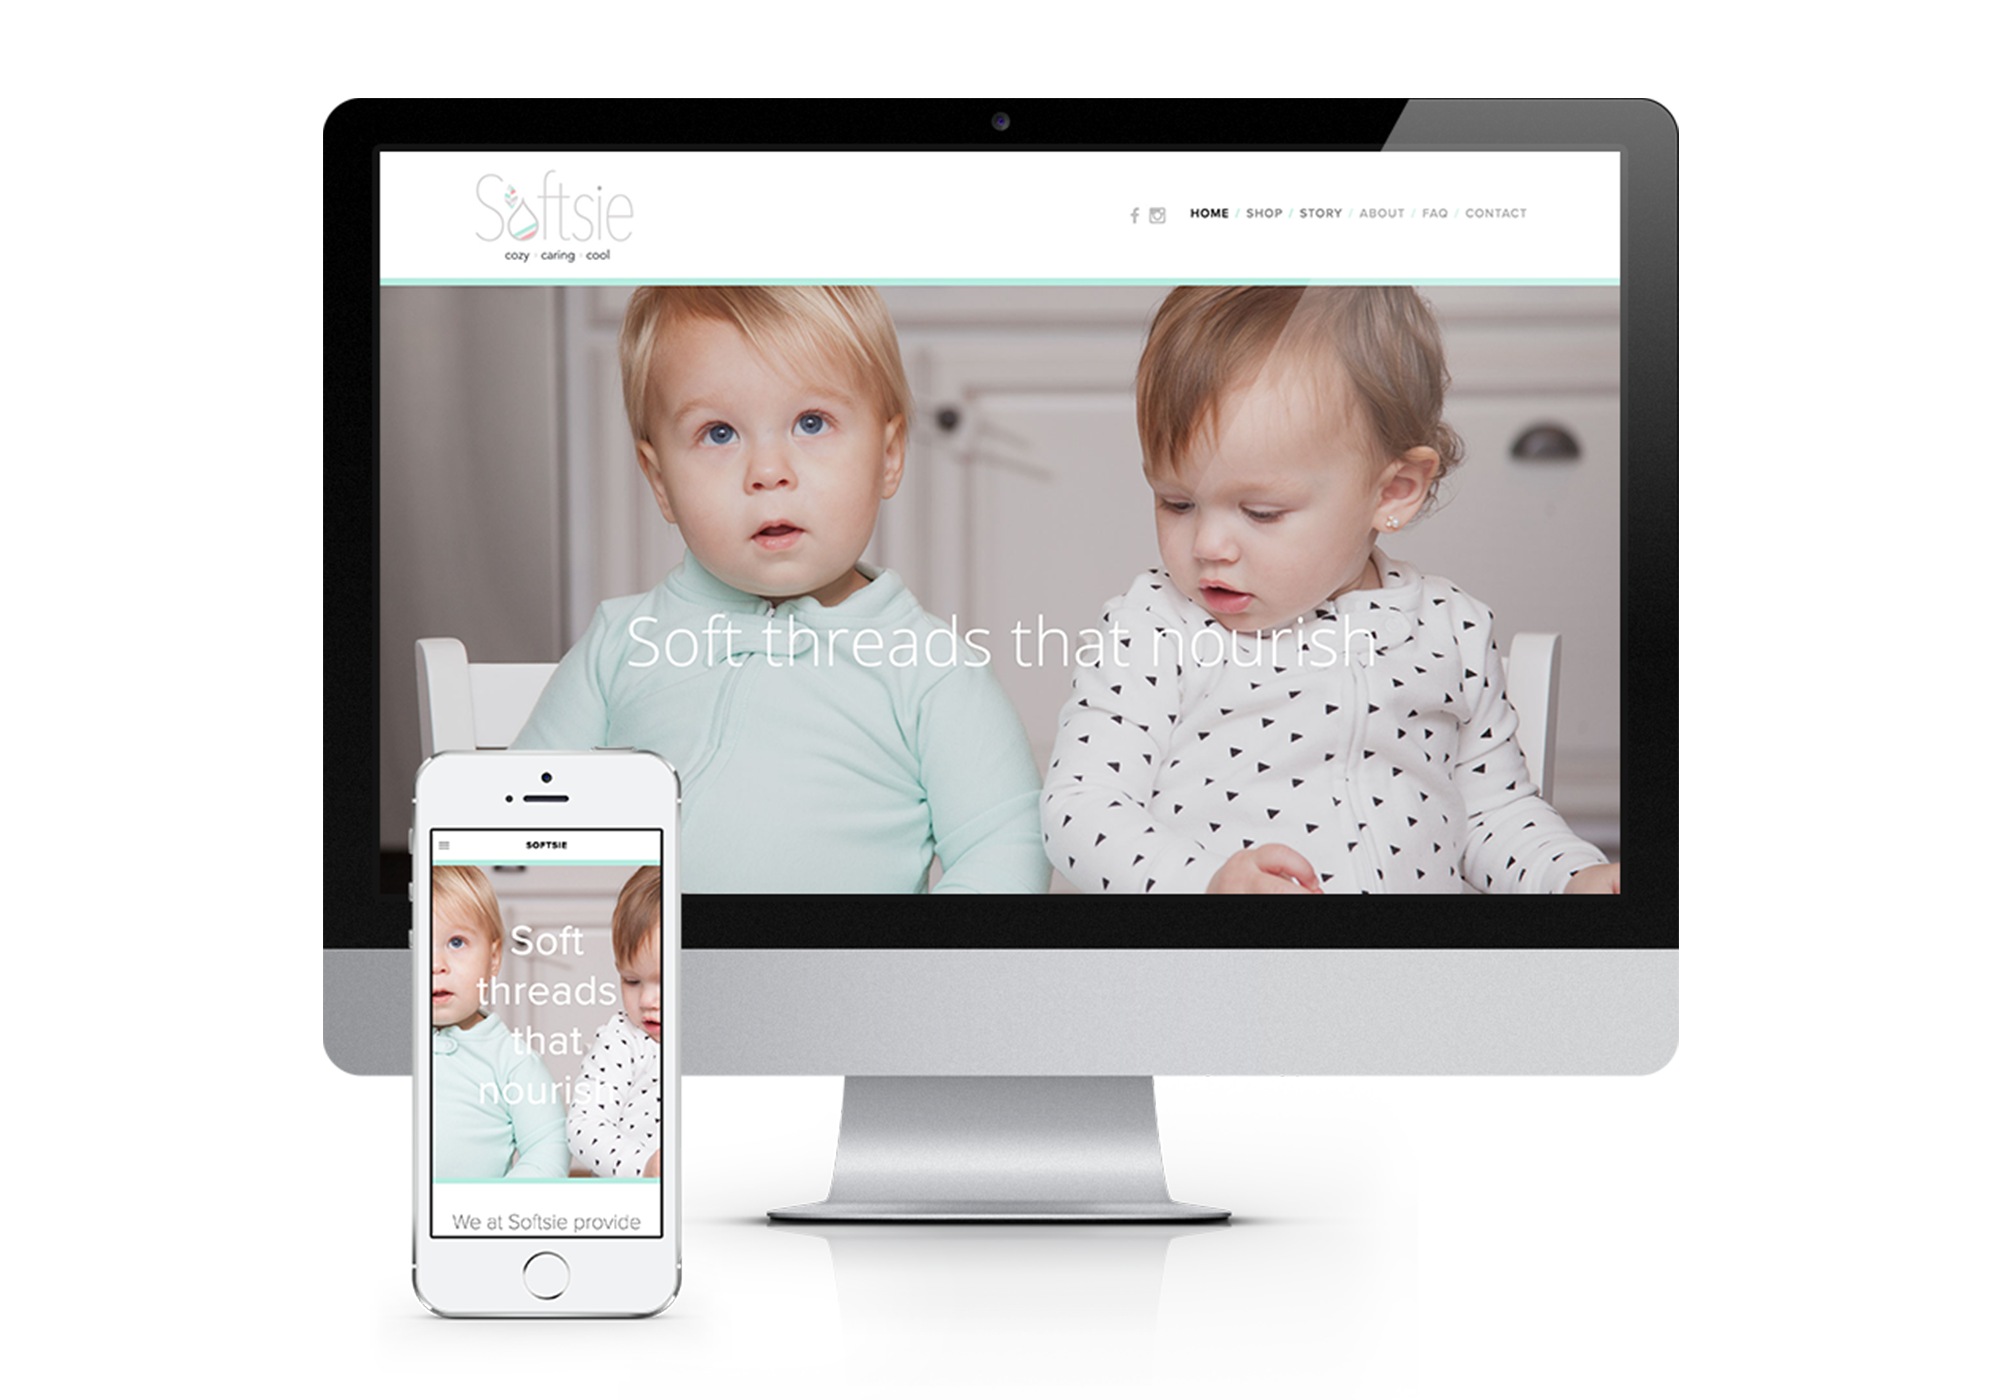 Softsie - Responsive Website